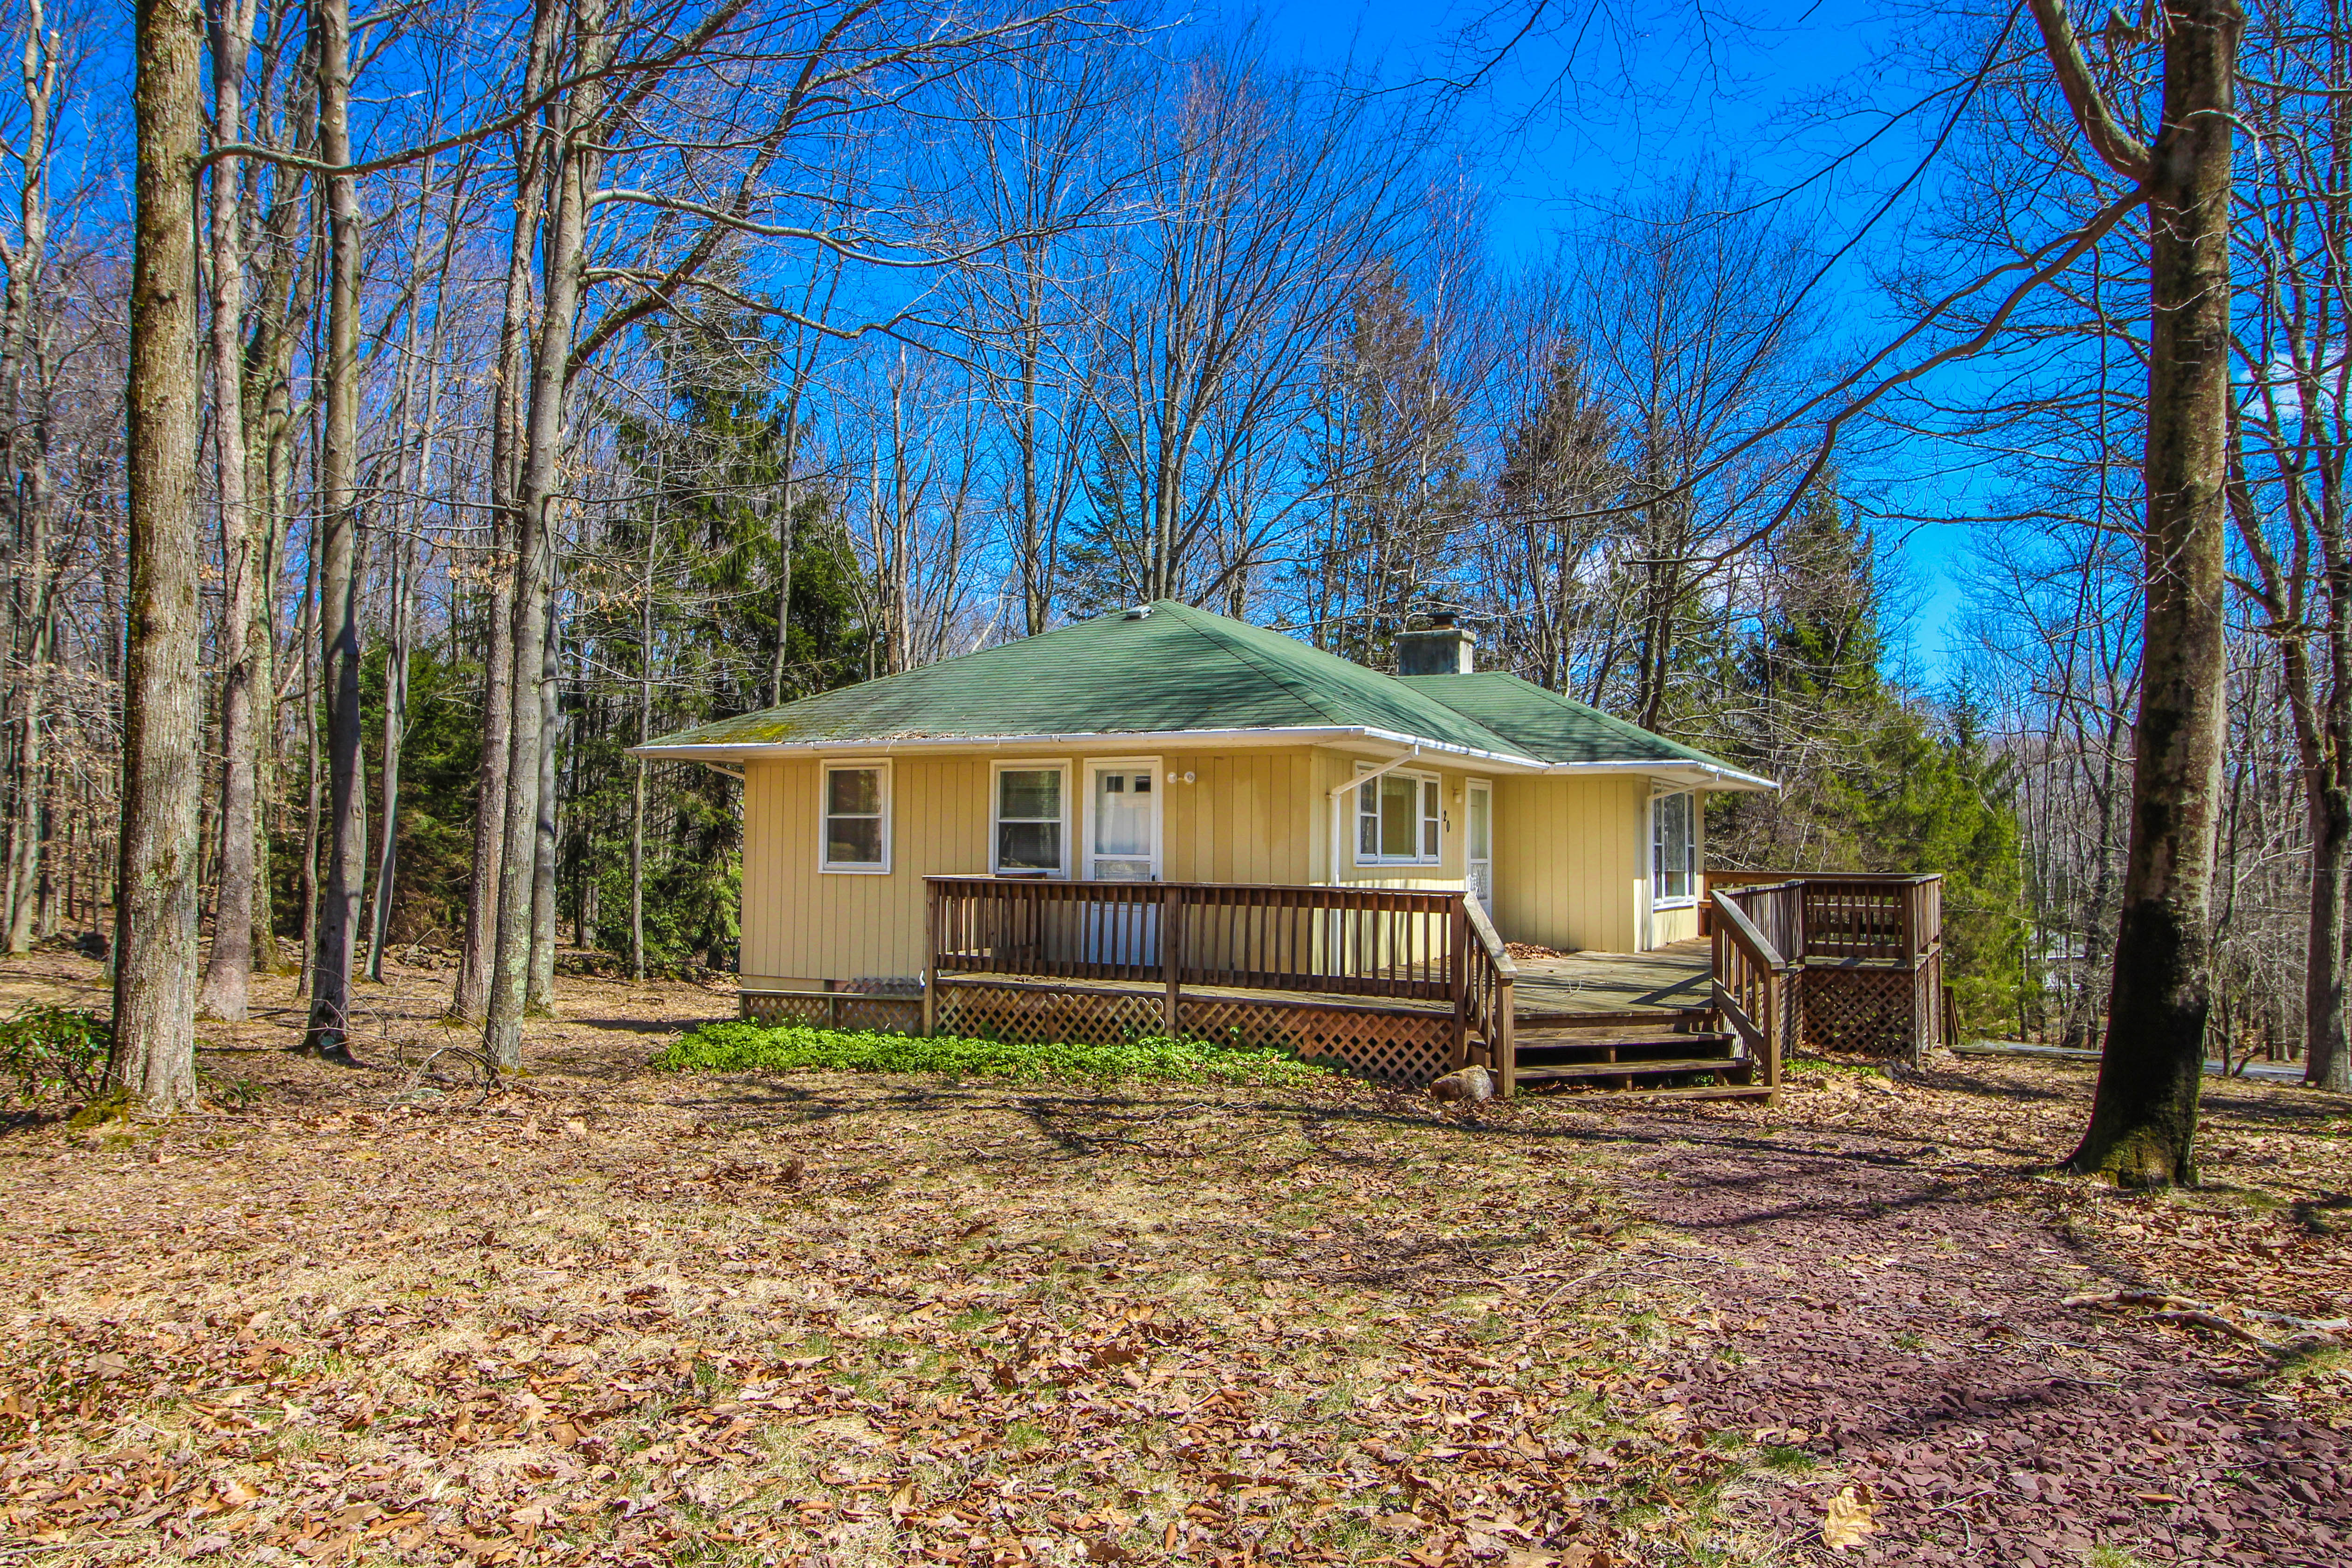 White Haven Home For Sale Just Listed in Pocono Mountain Lake!